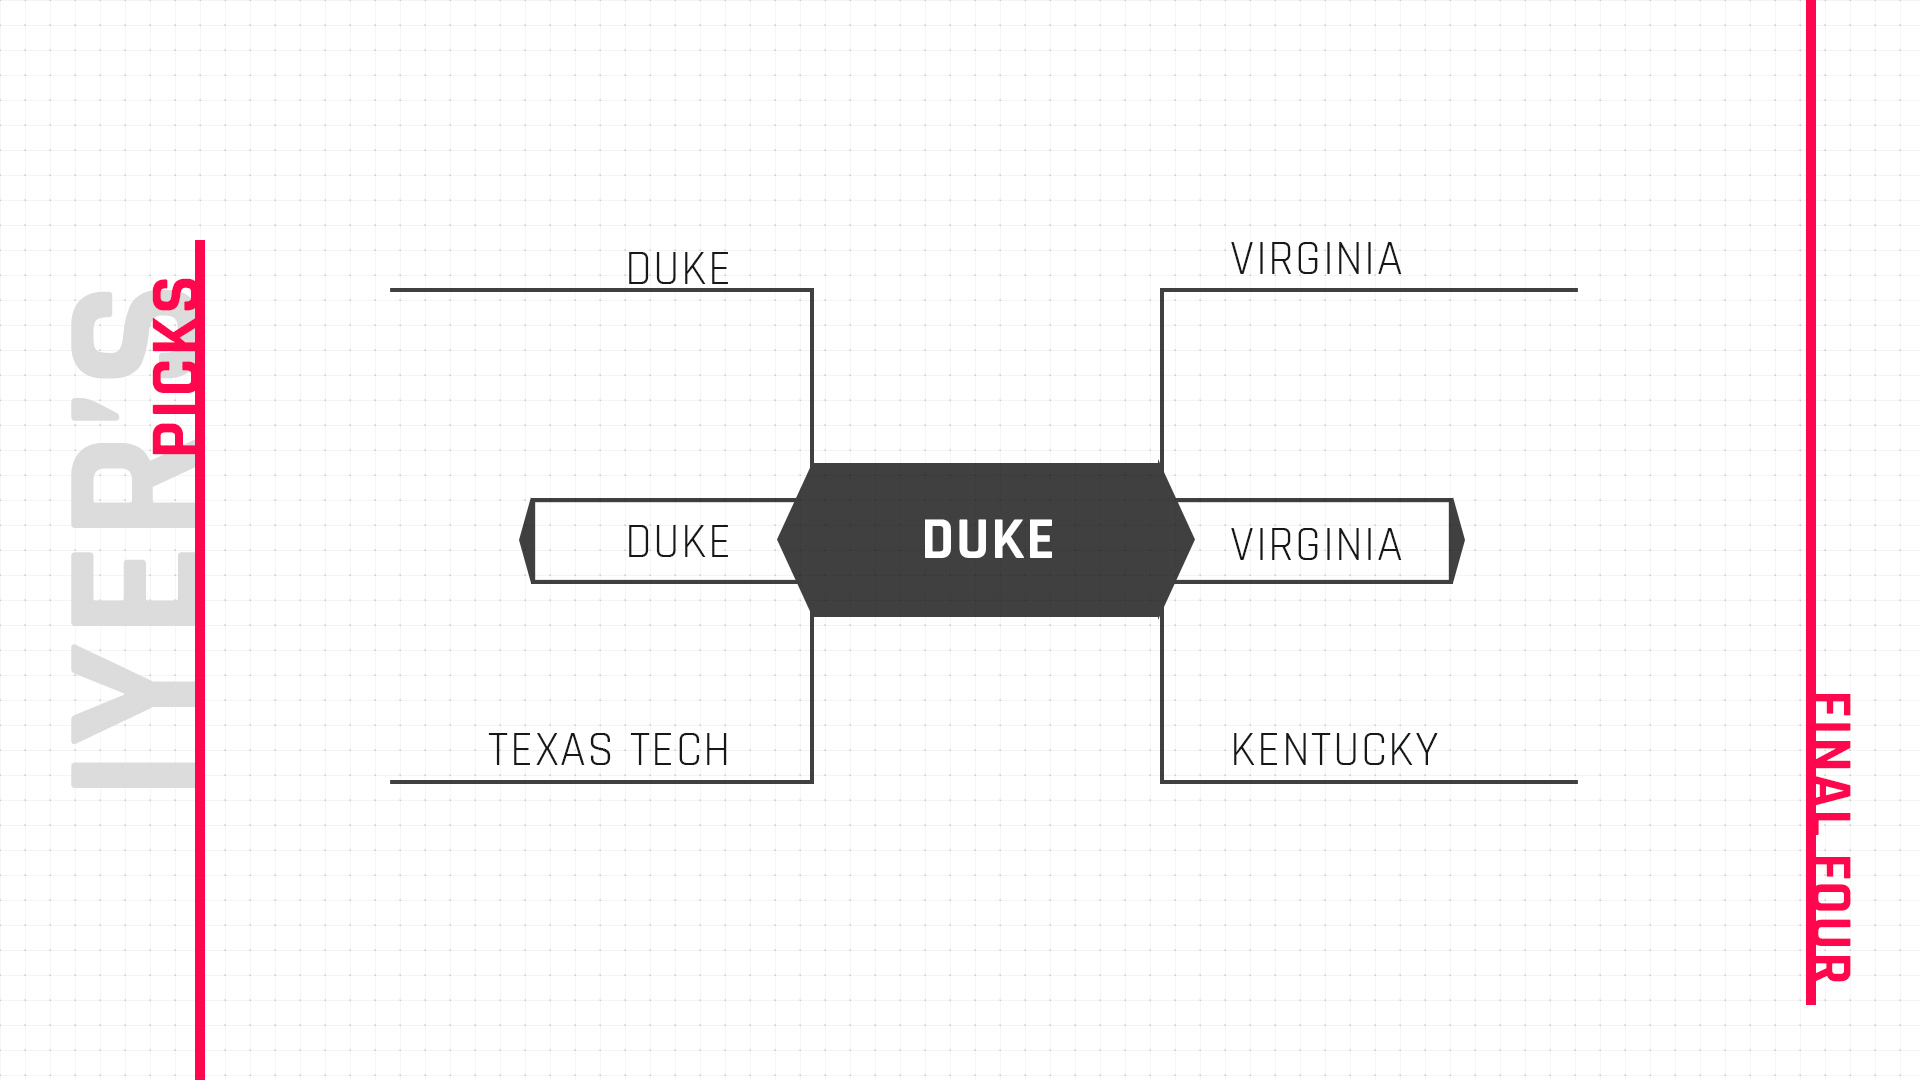 March Madness 2019: Using KenPom To Predict NCAA Bracket